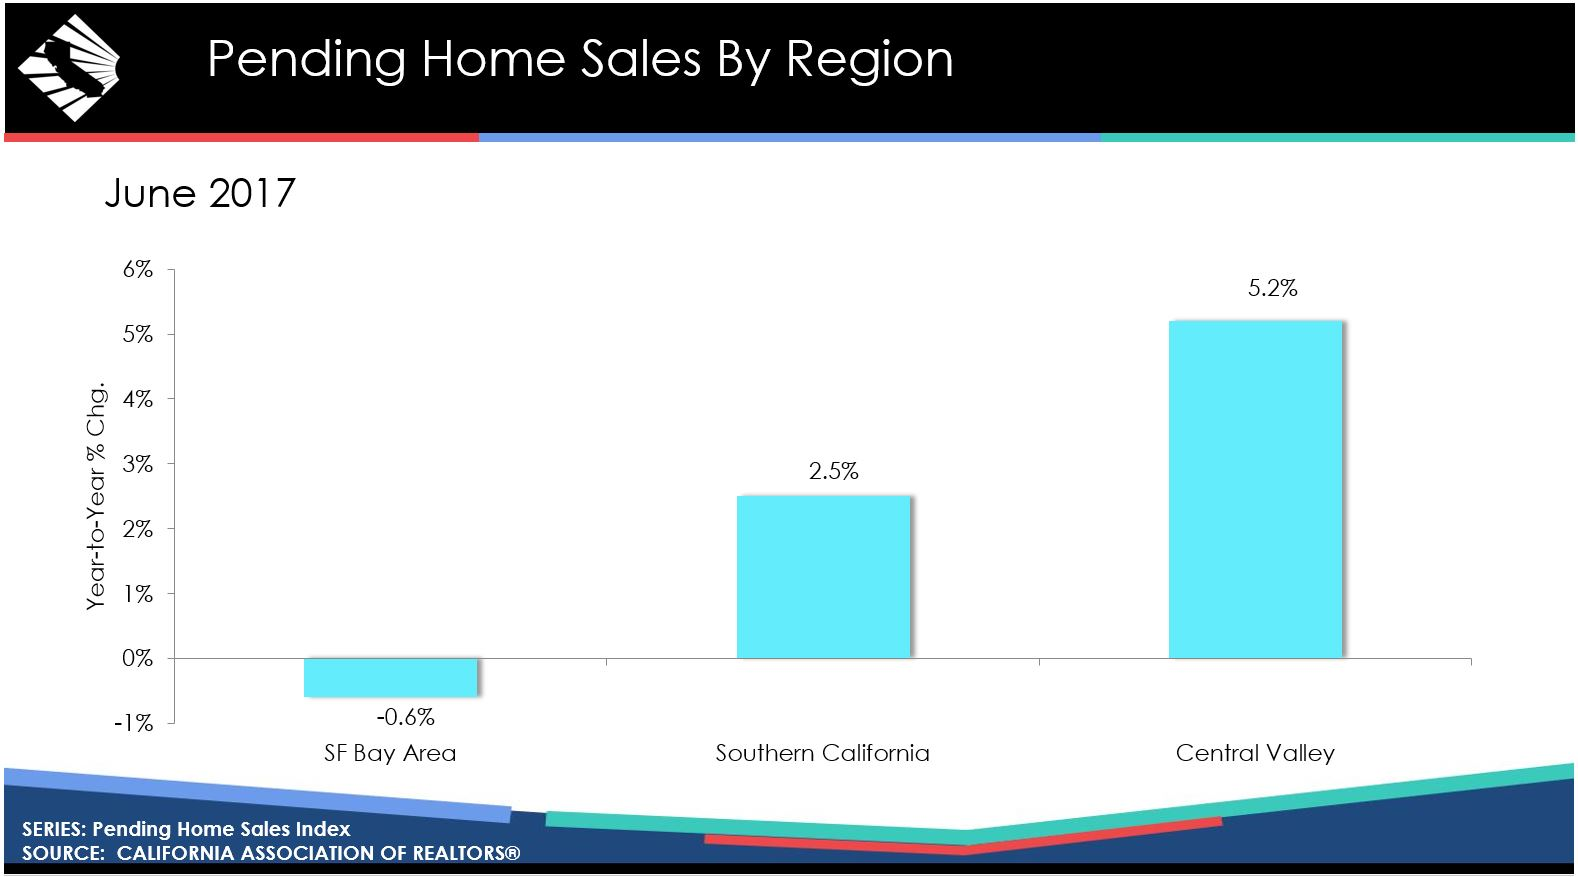 california june 2017 pending home sales by region graphic source car